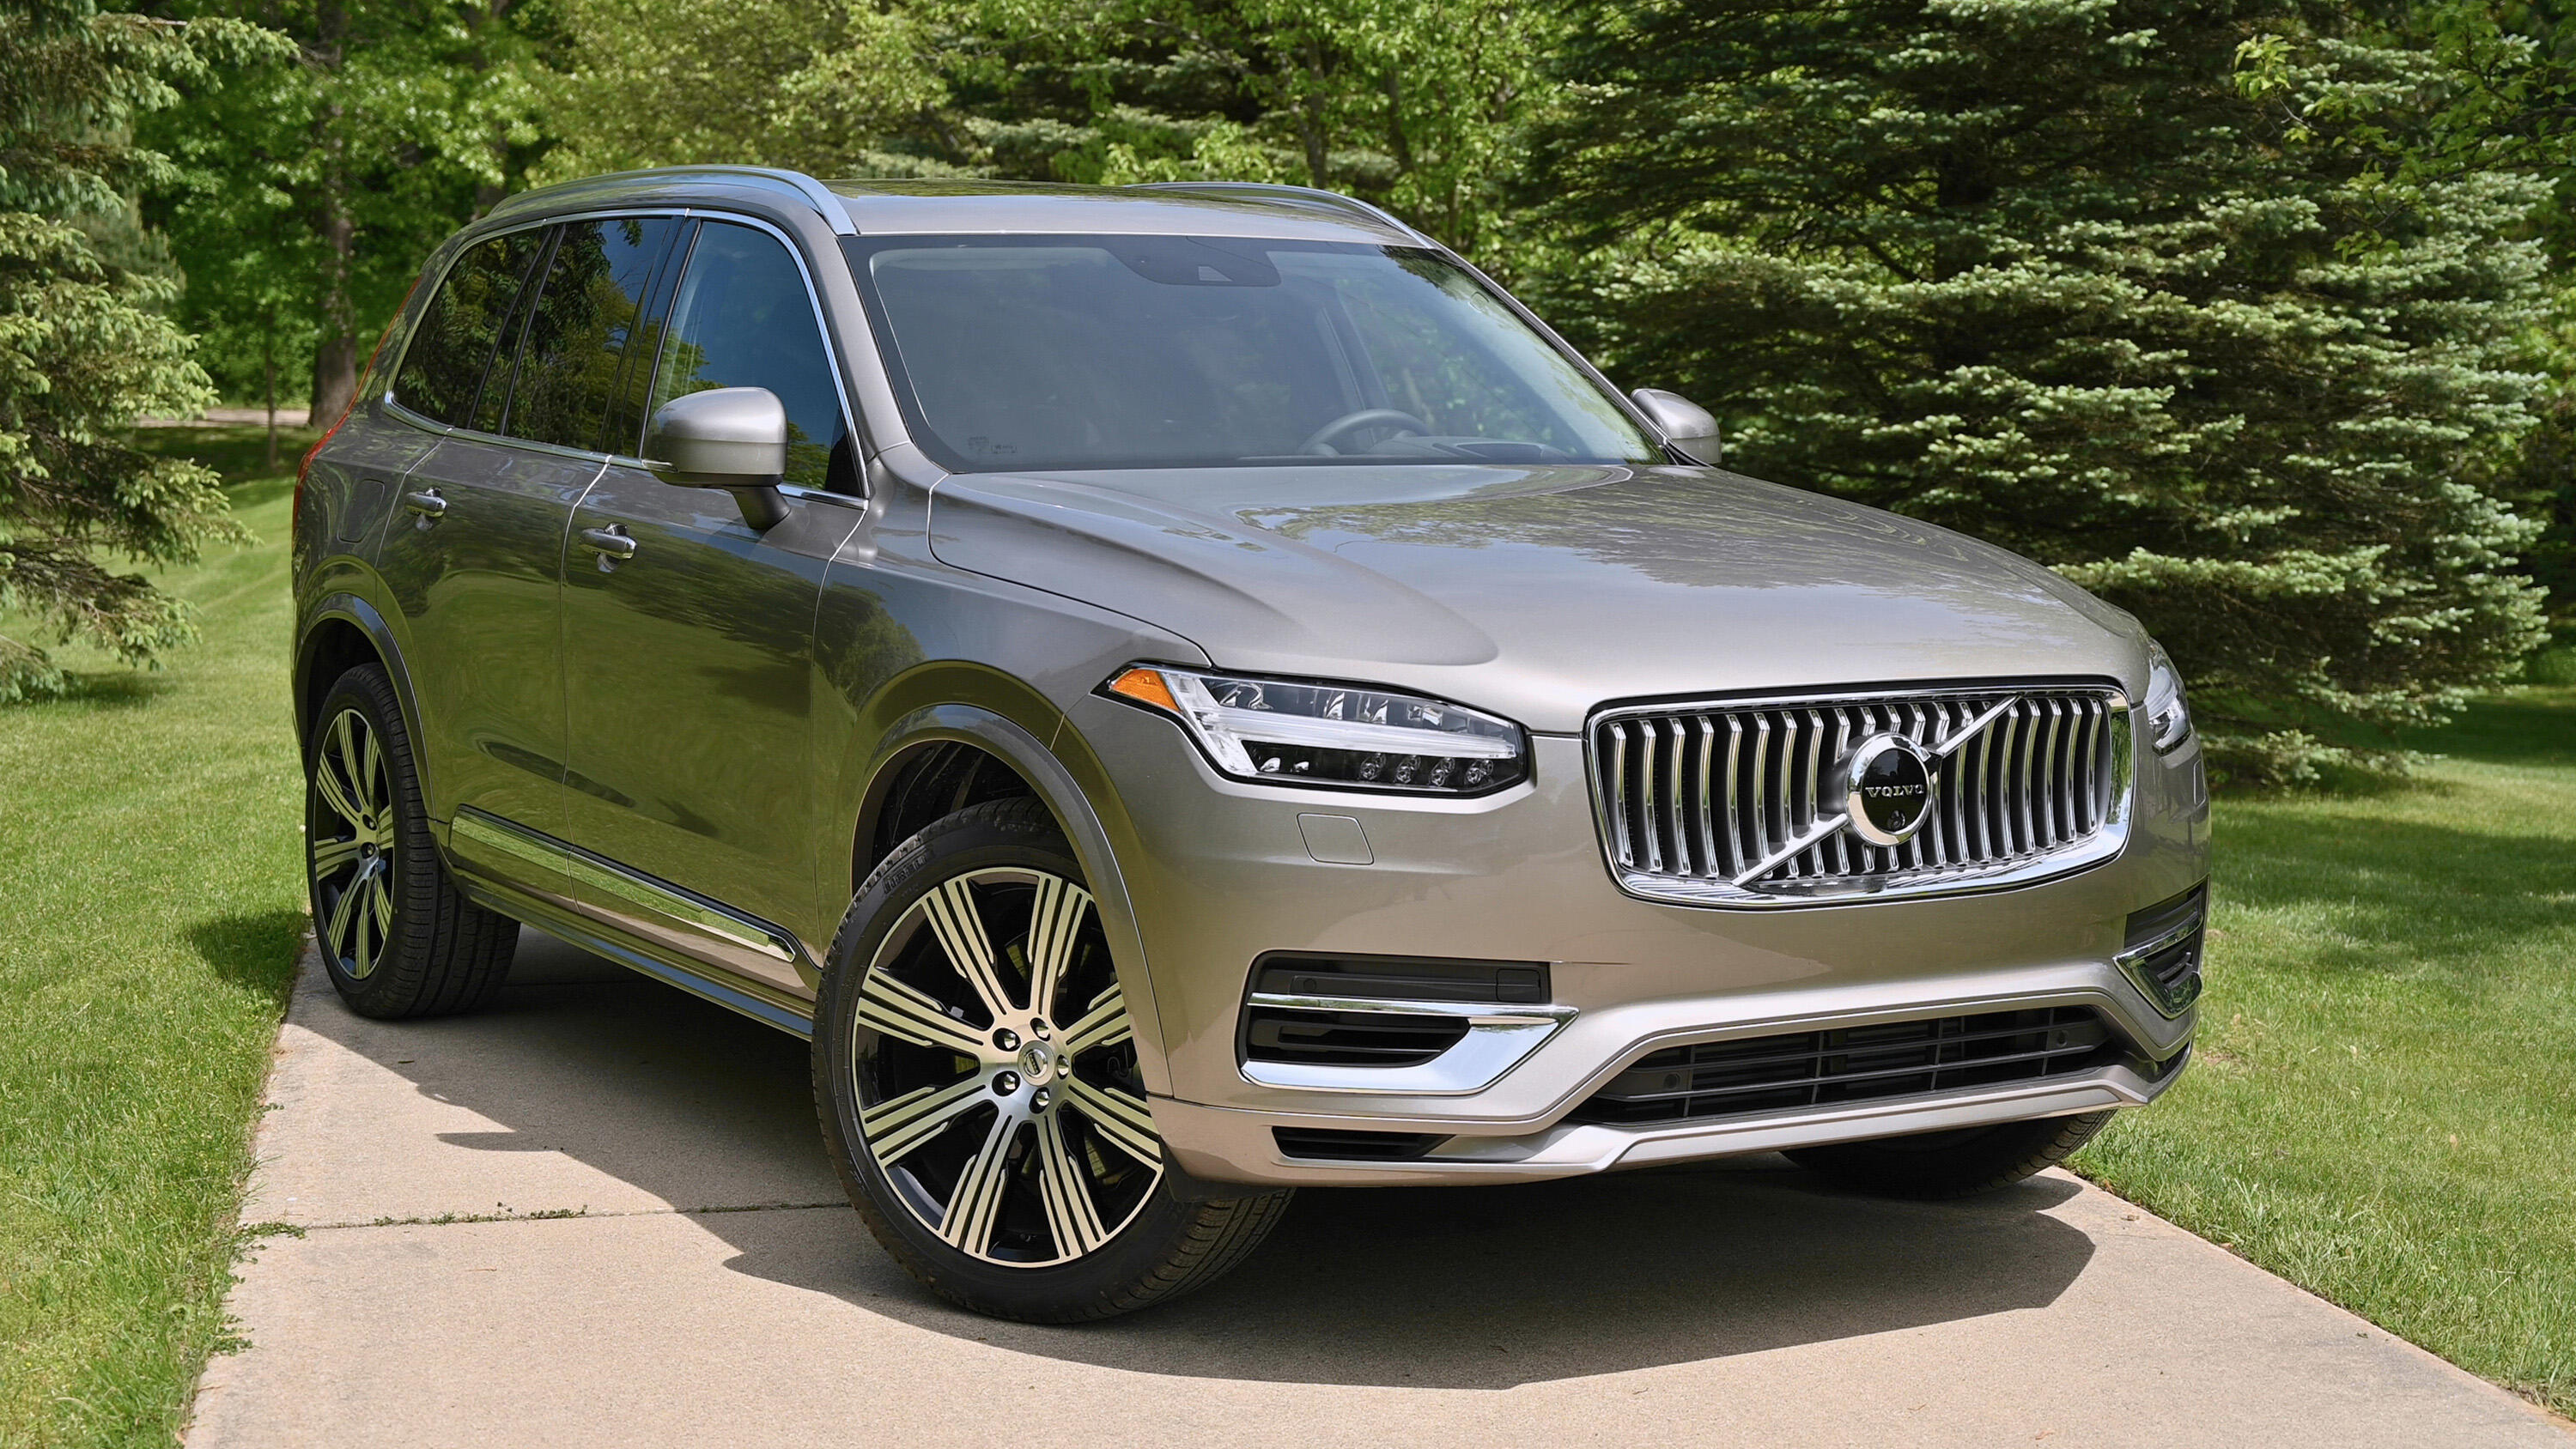 Video: 2020 Volvo XC90 T8 eAWD: A smooth and luxurious plug-in hybrid SUV video